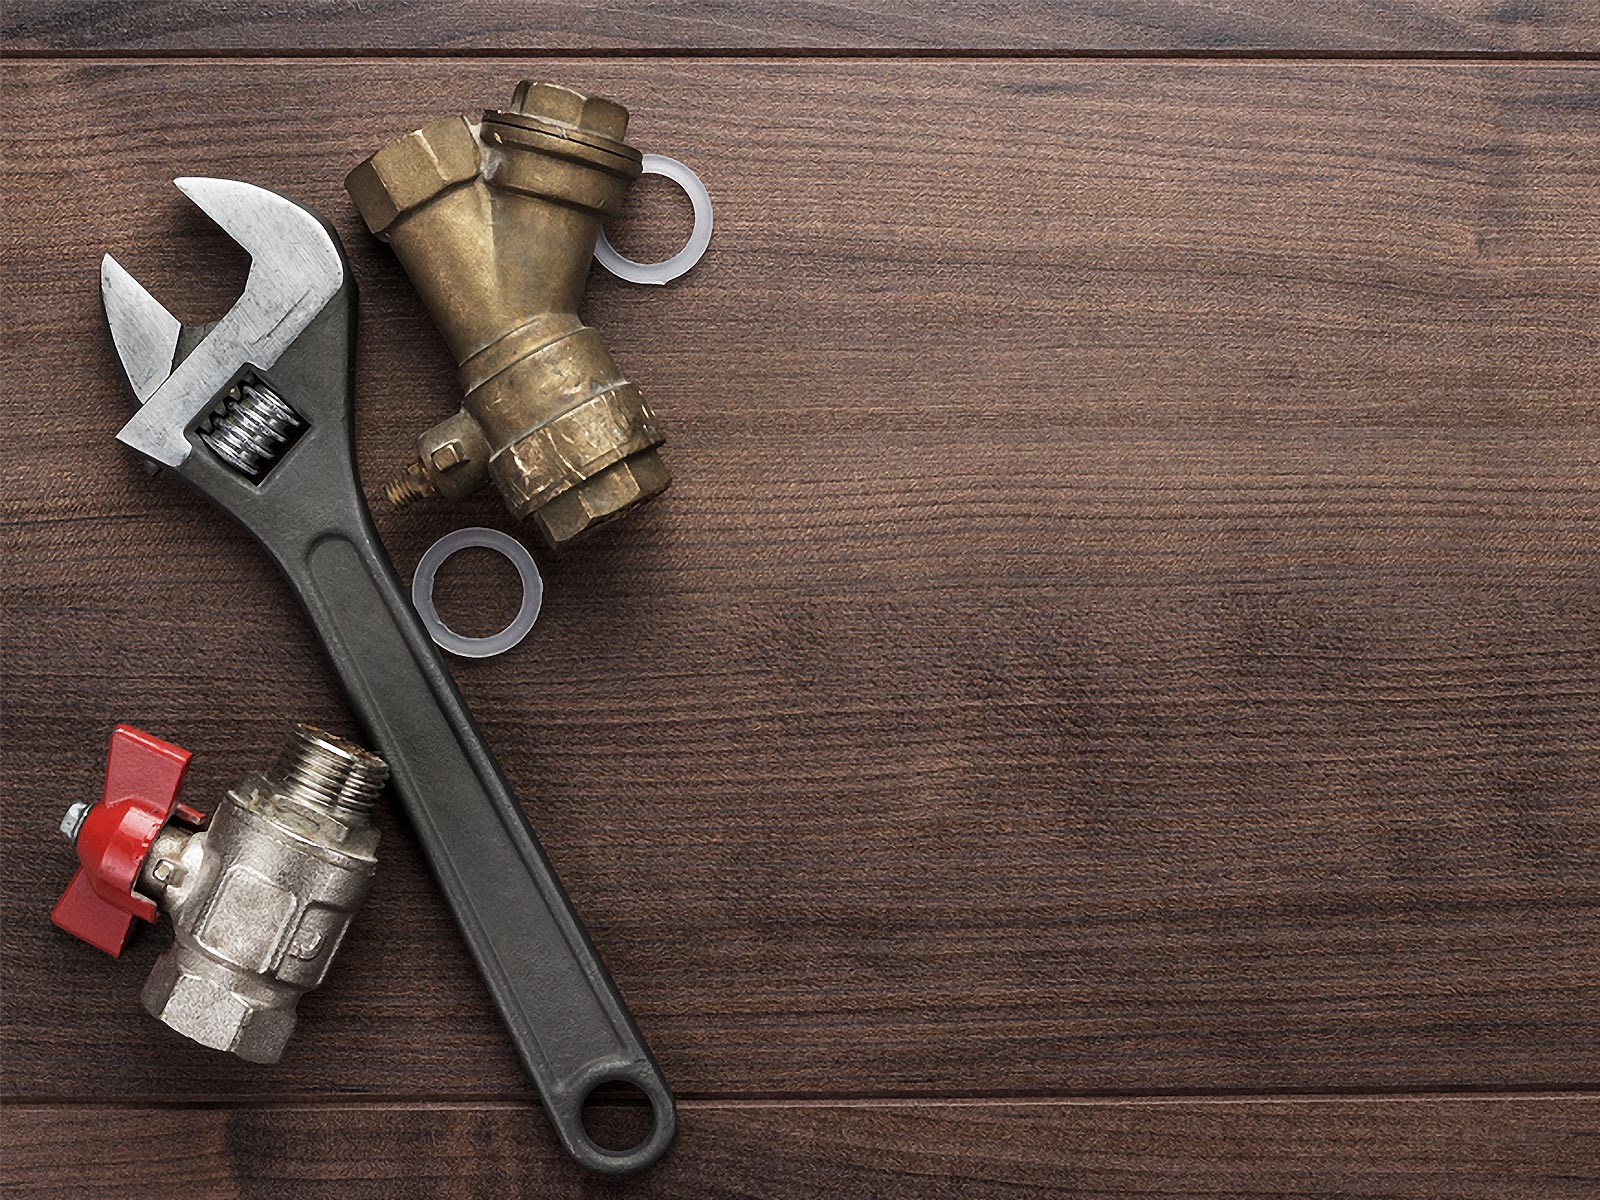 7 Reasons for a Plumbing System Upgrade